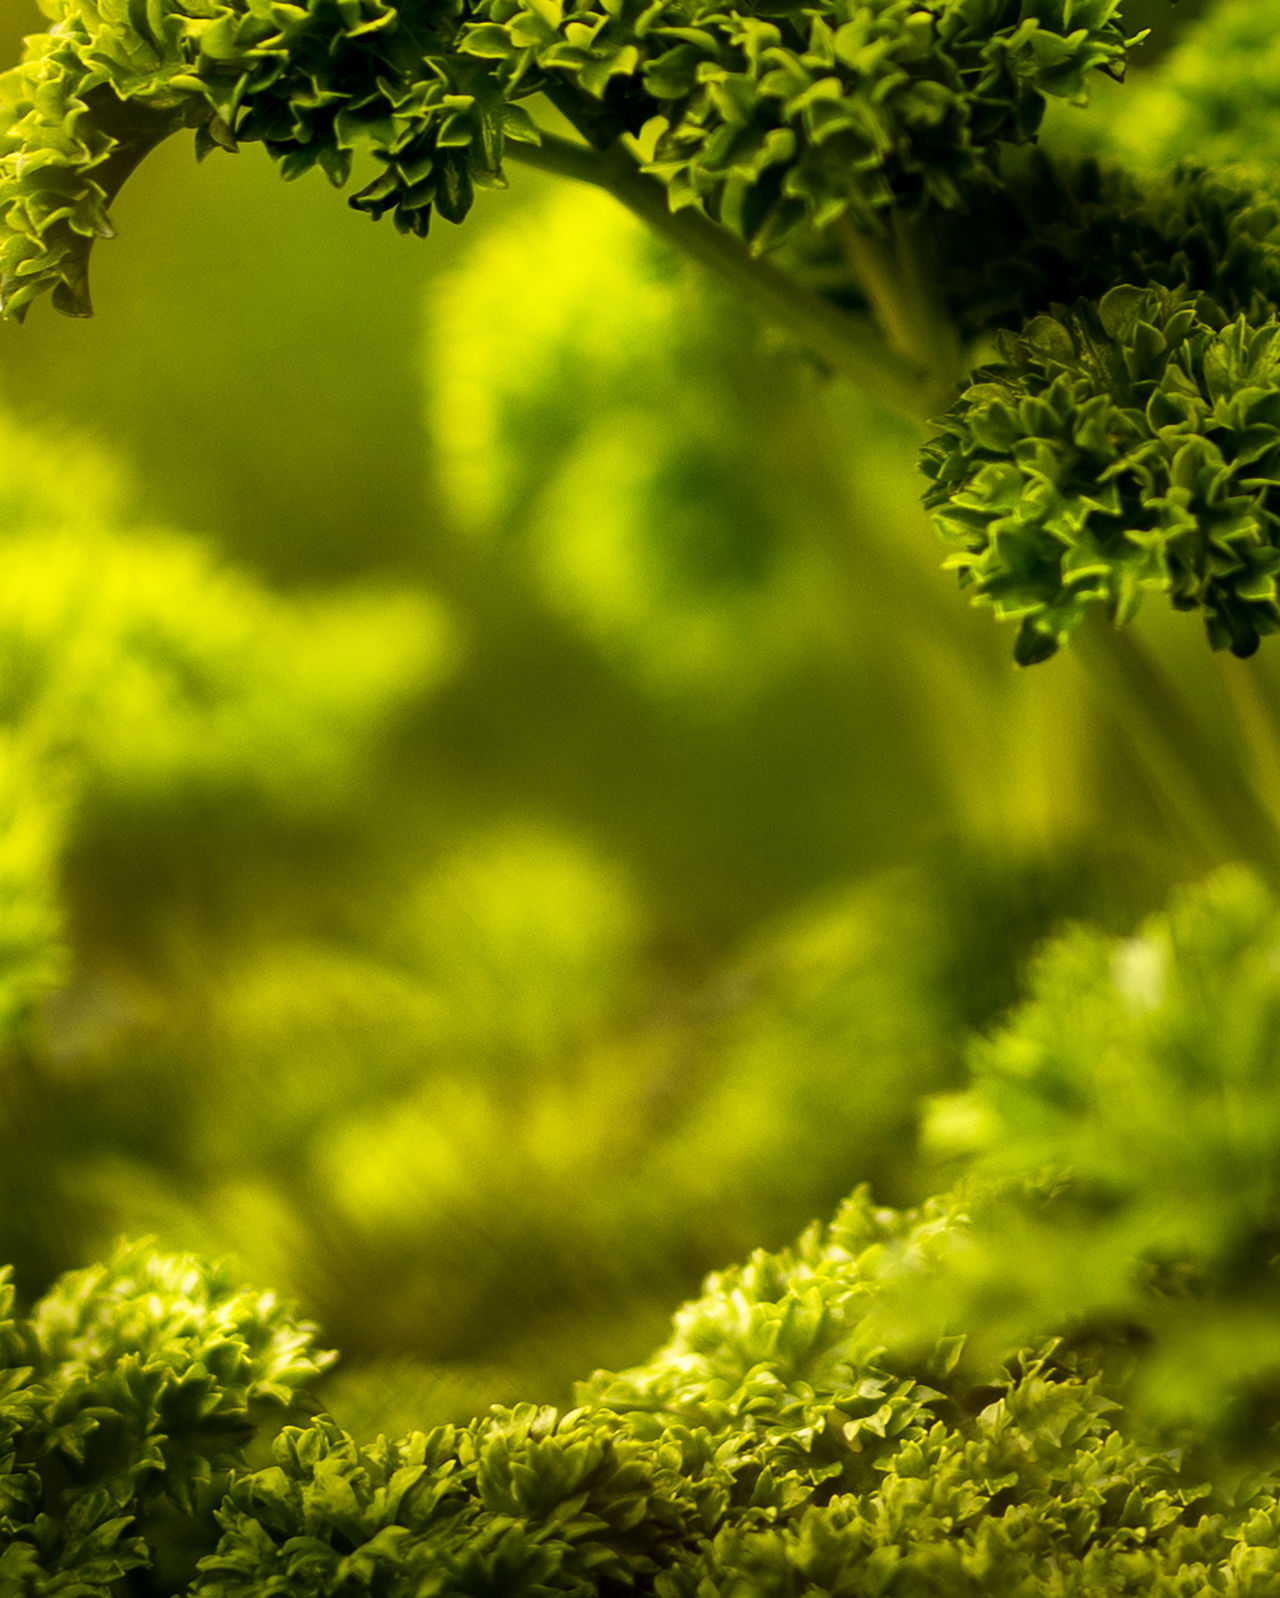 Beauty In Nature Freshness Green Green Color Nature Outdoors Parsley Plant